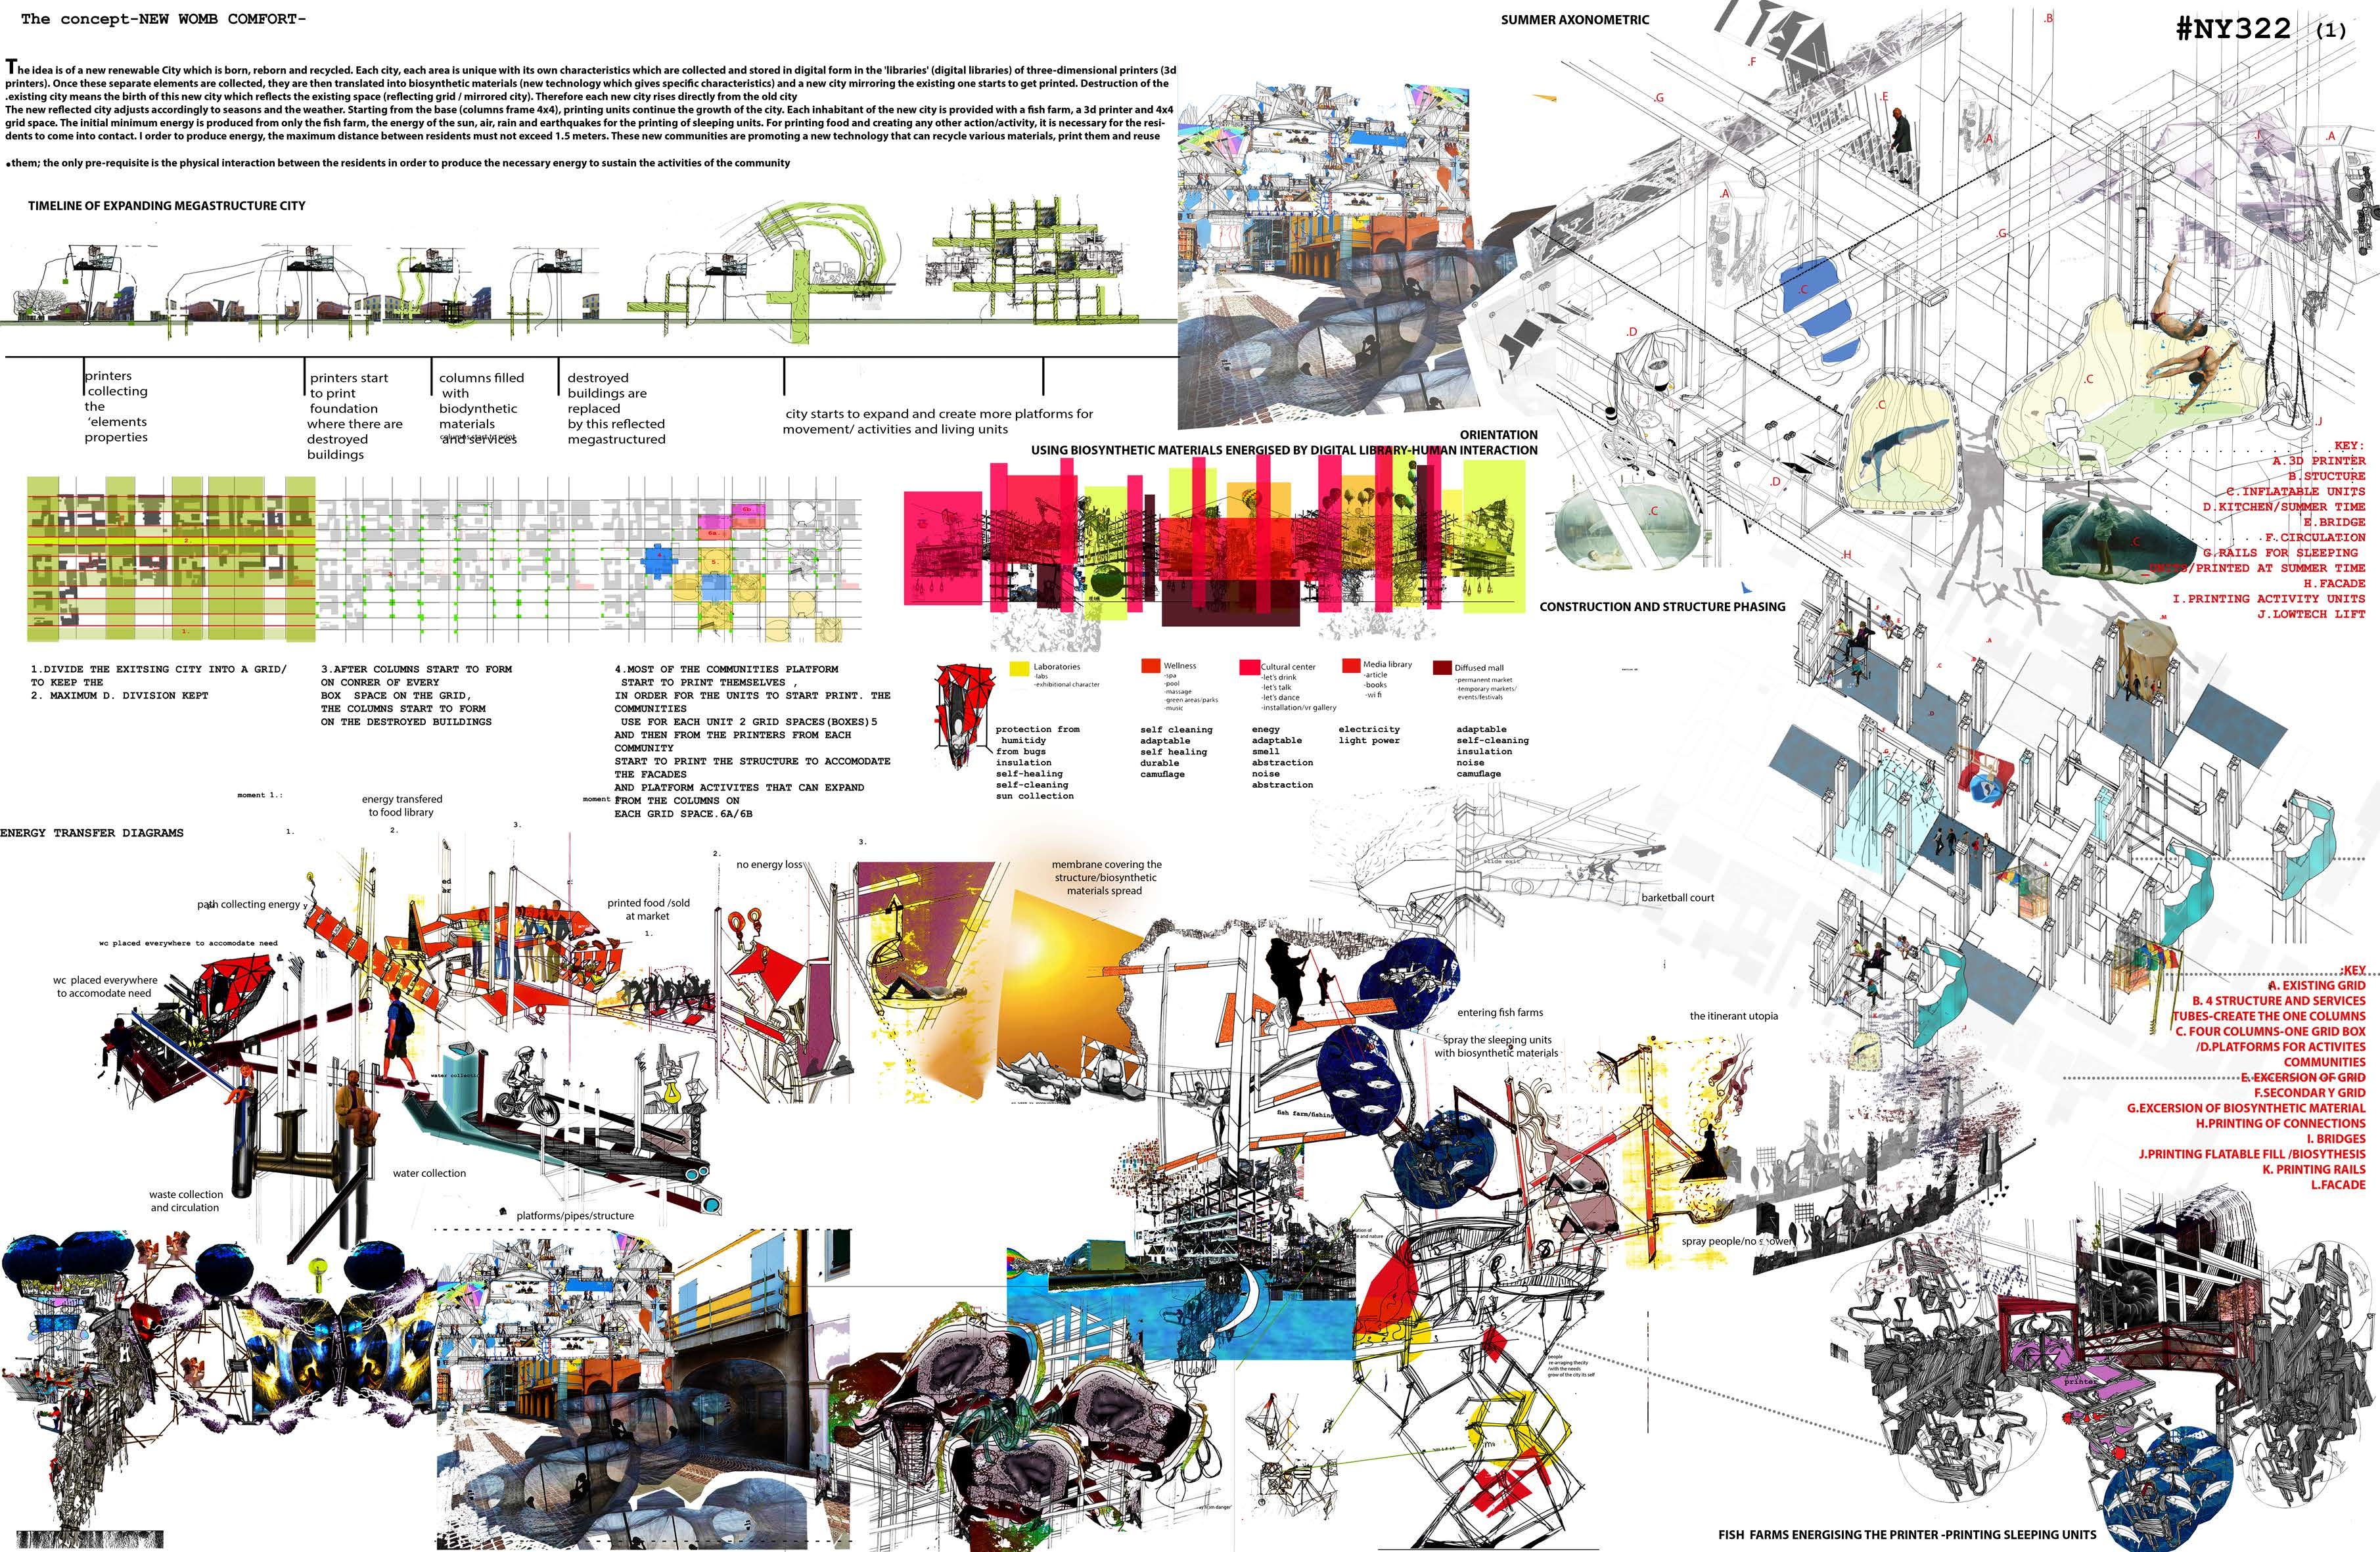 international award for d3 natural systems architecture